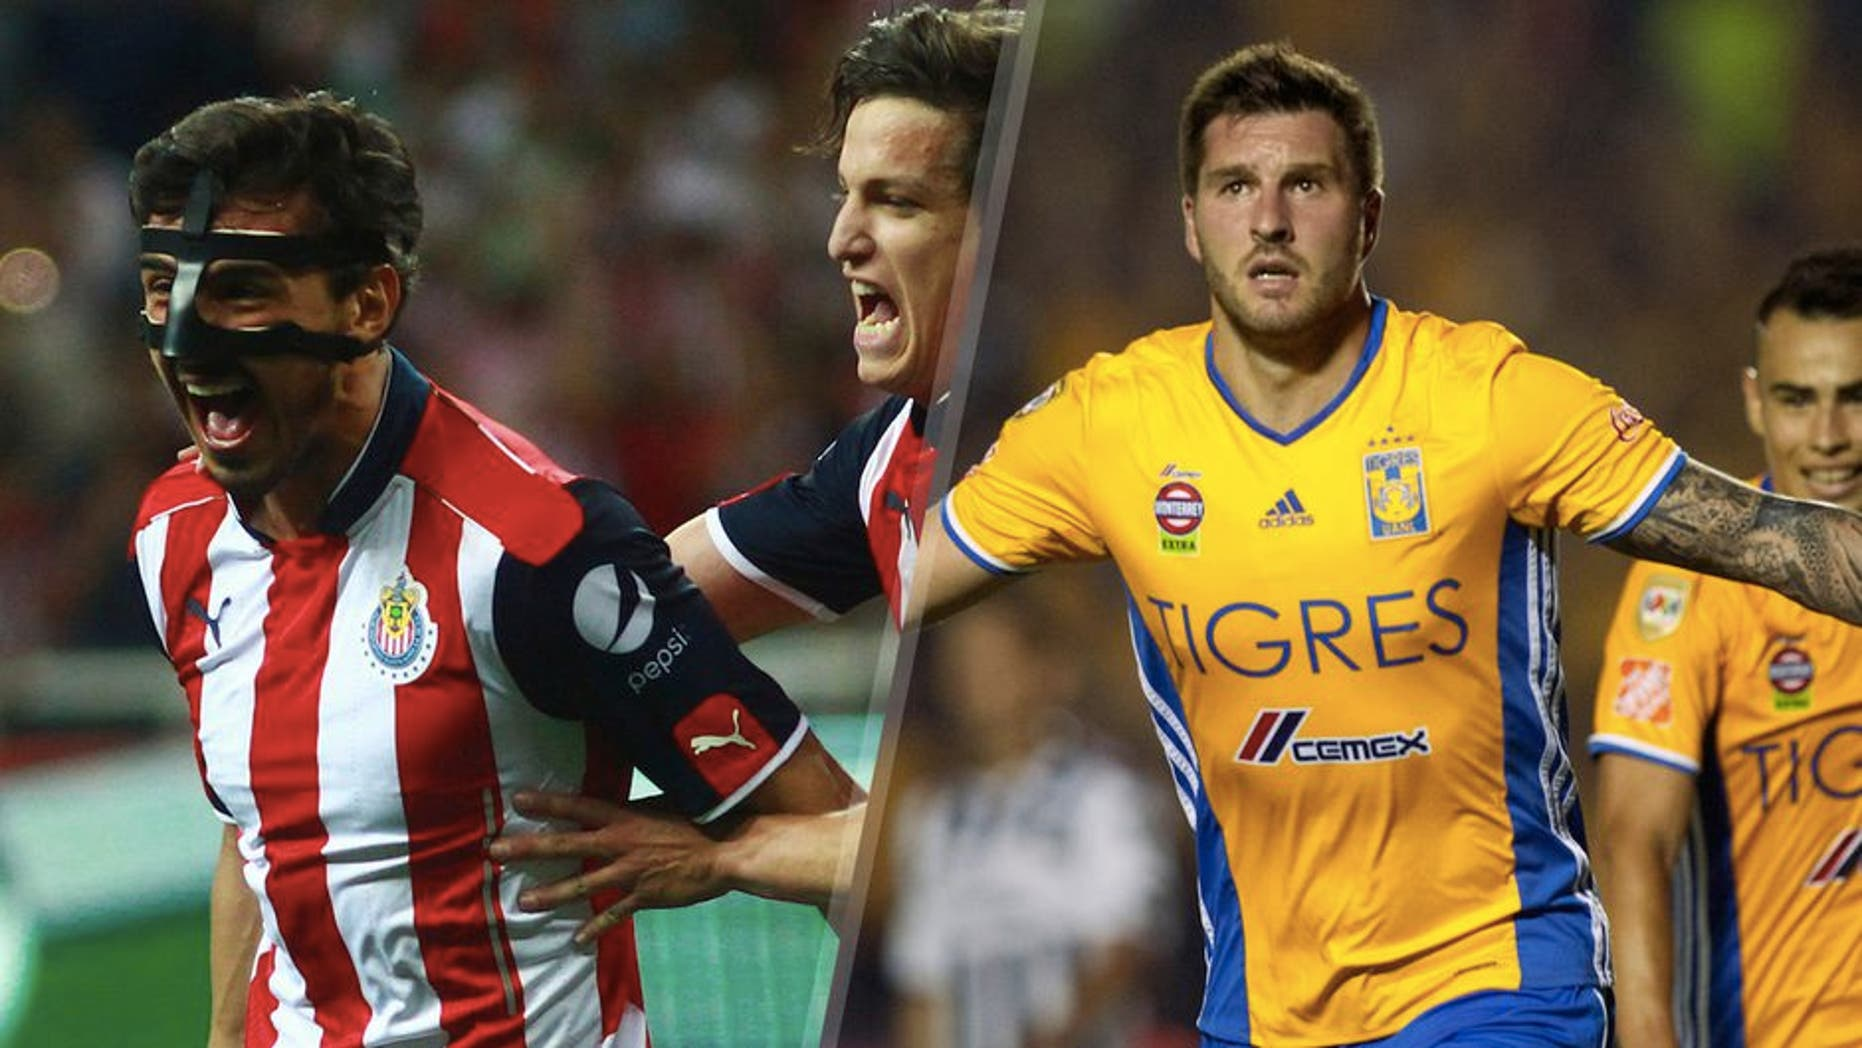 f03cdffb2b8 The Liga MX final is set  Chivas Guadalajara and Tigres UANL will face off  to be named the Liga MX Clausura champion.